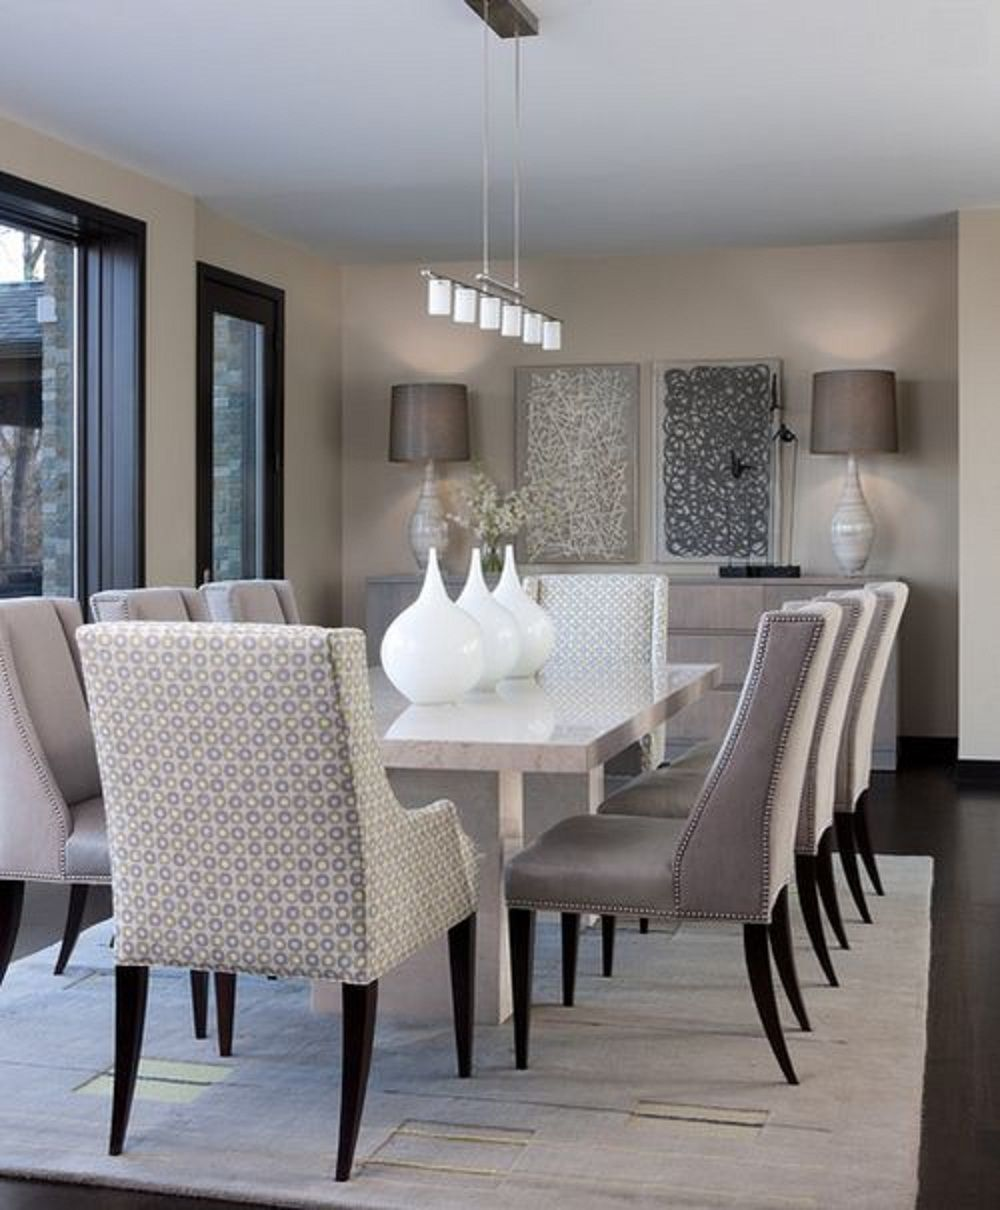 Cheap Dining Room Decorating Ideas Part - 33: Contemporary Dining Room Design Ideas With White Marble Dining Table And  Modern Decorative Wall Arts